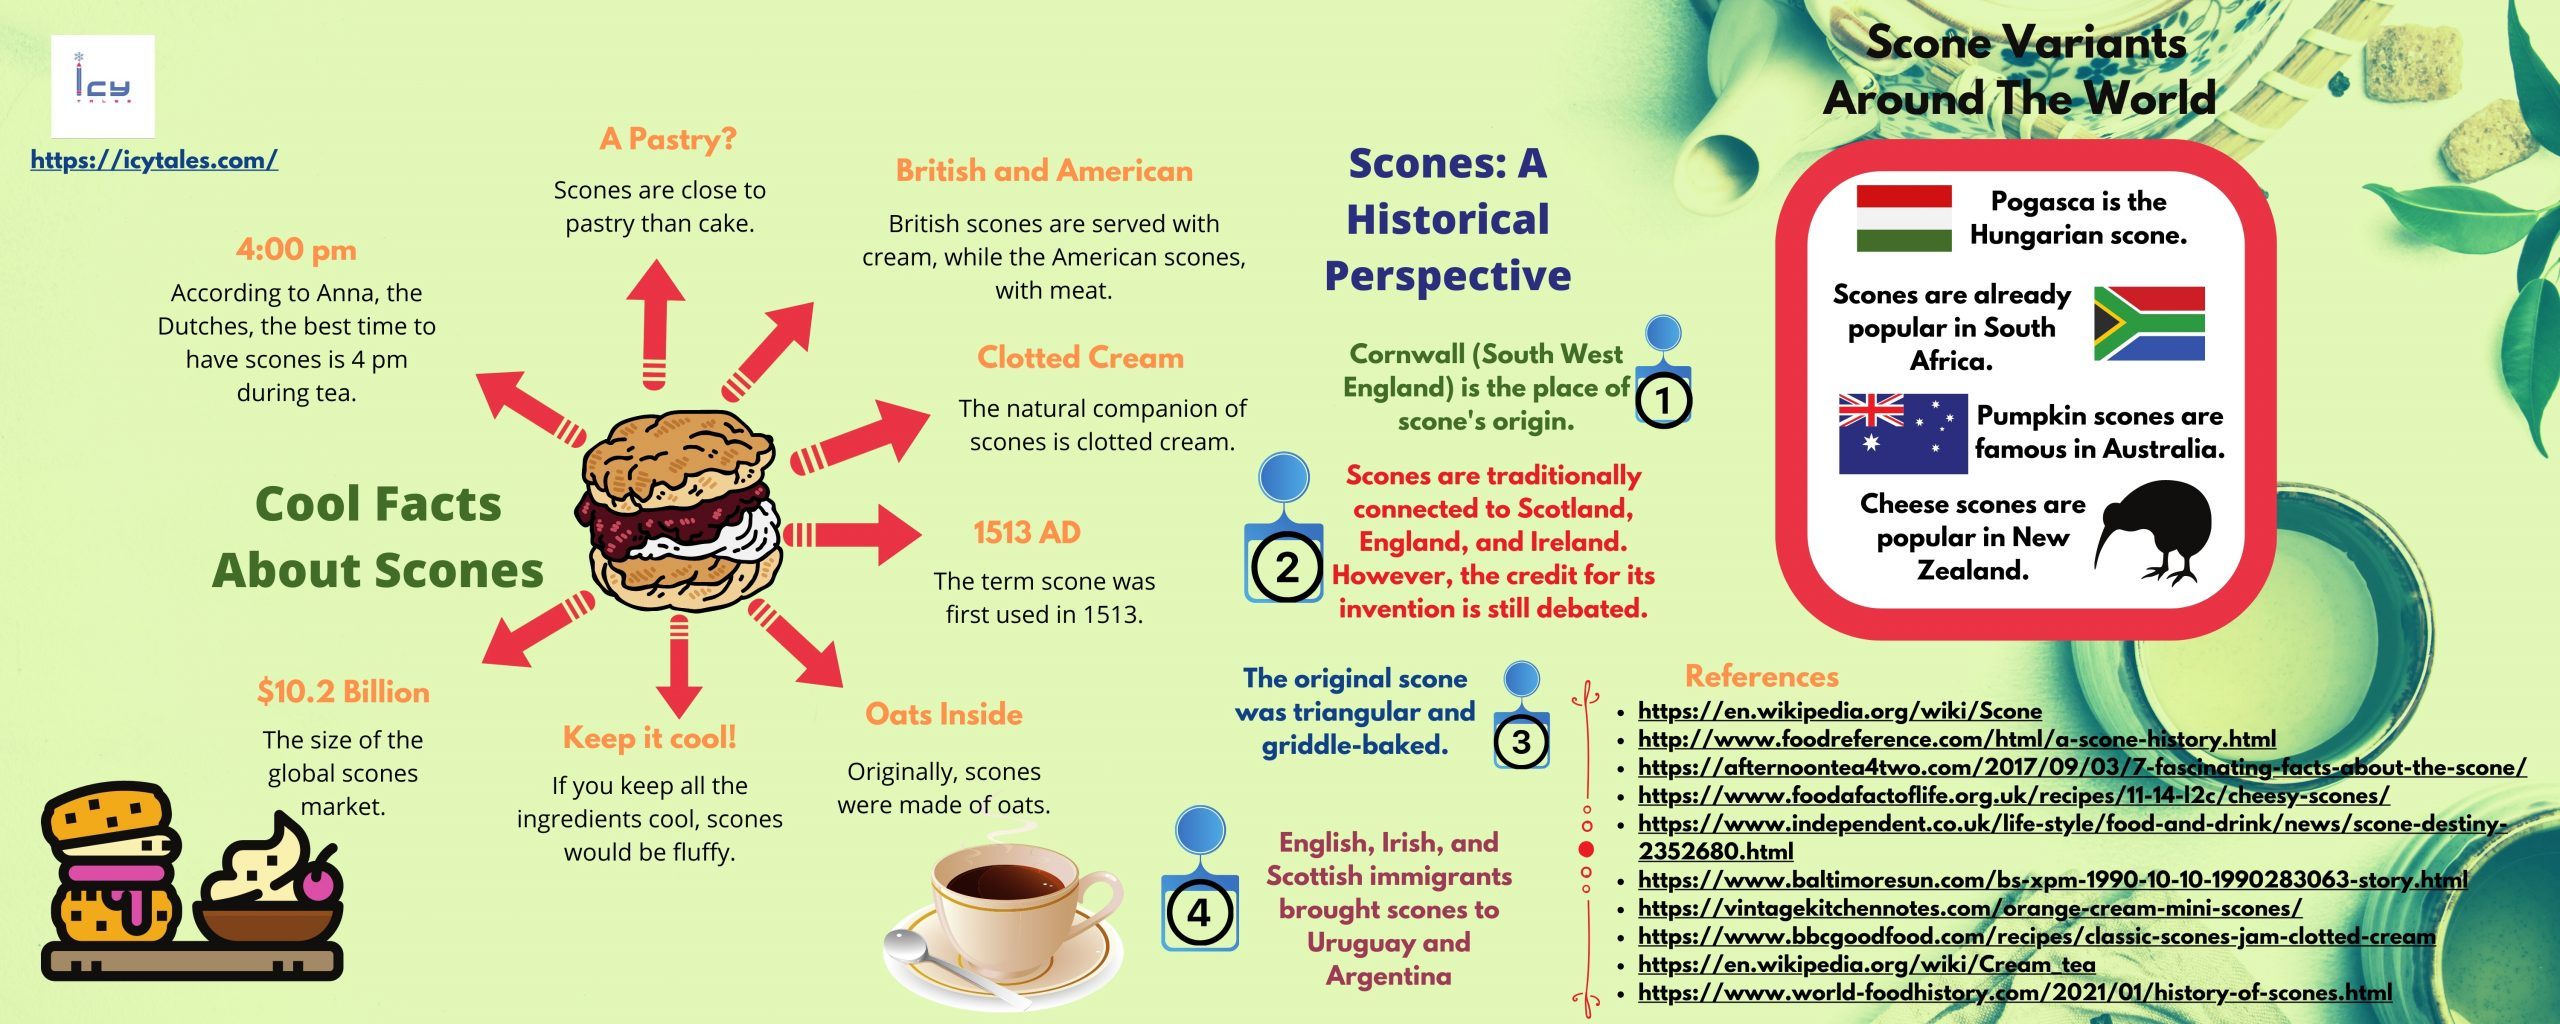 Cool Facts About Scones